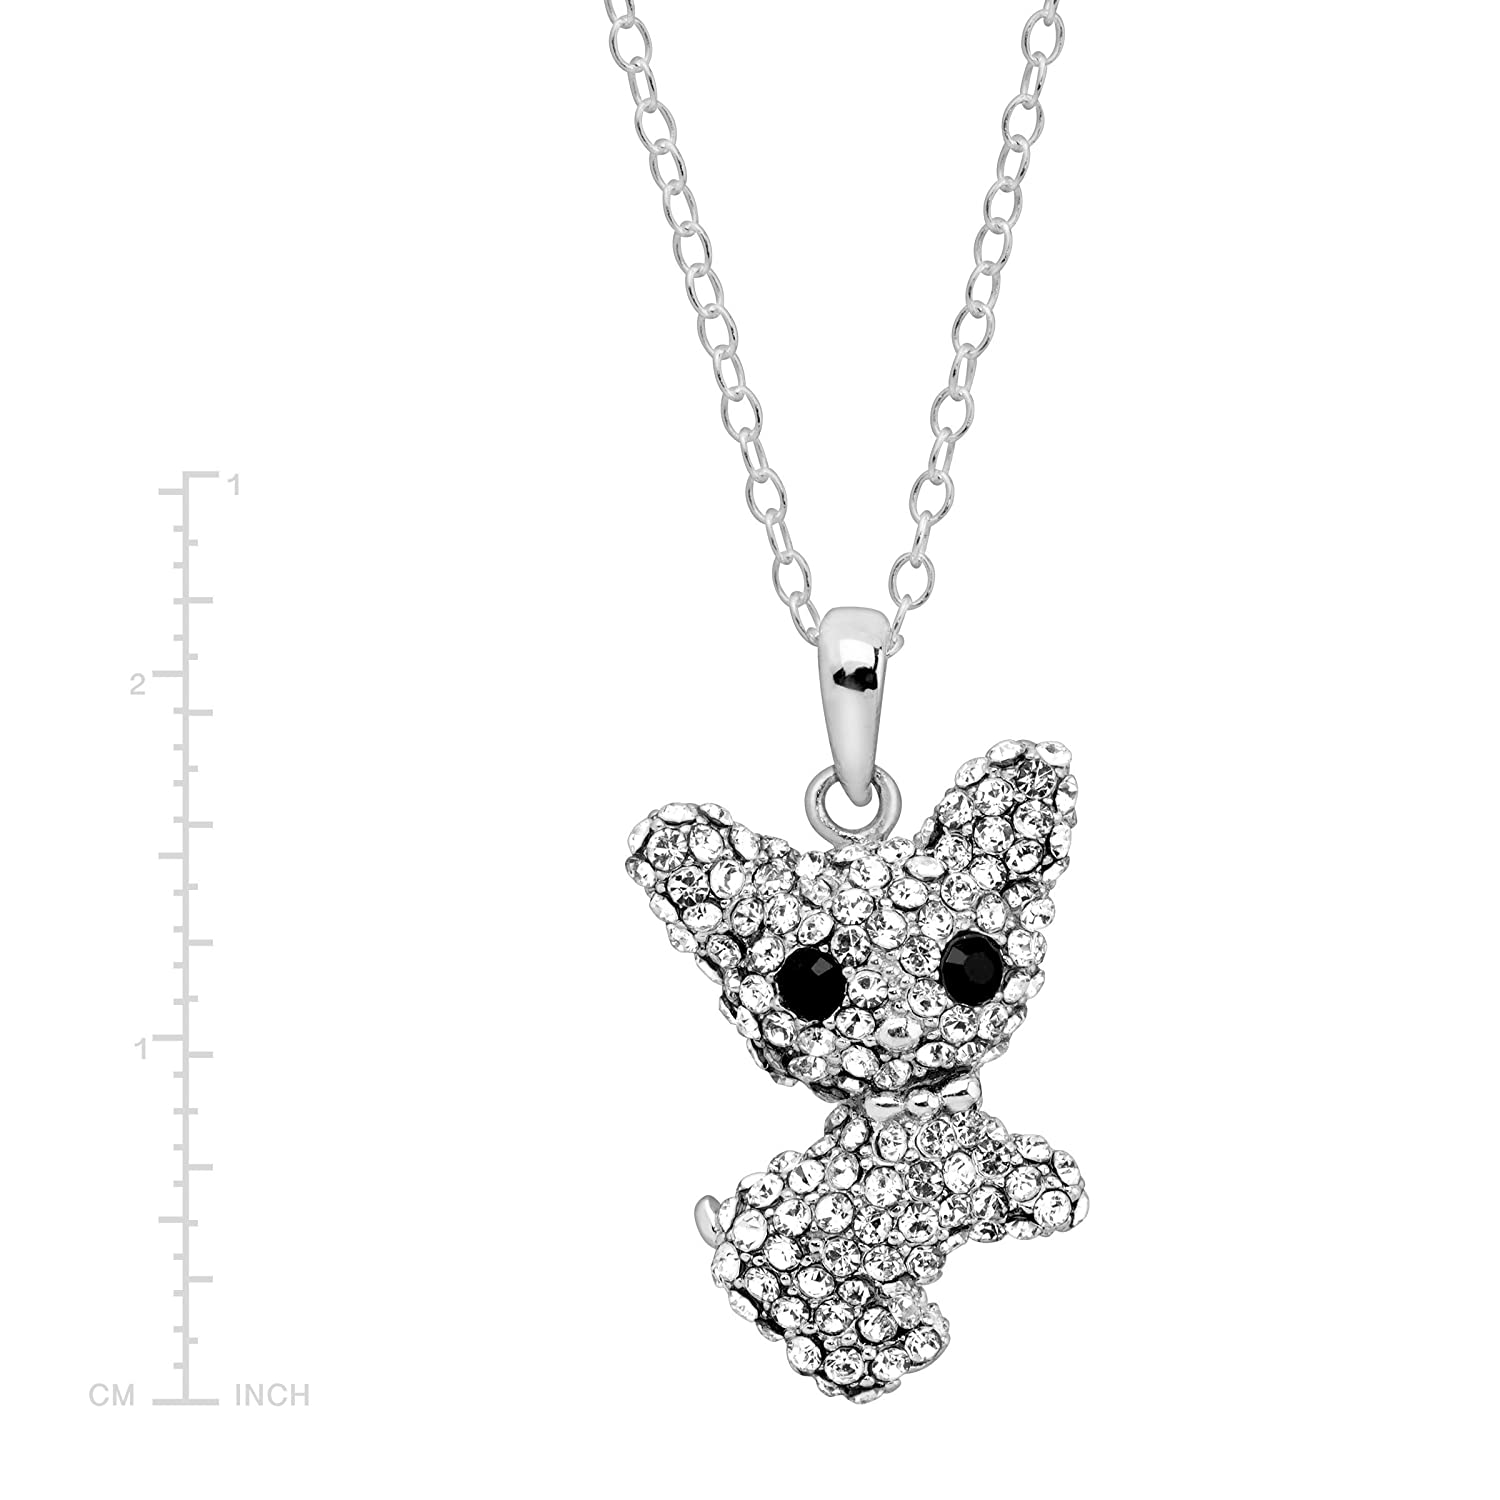 49a1fd75adca4 Amazon.com: Crystaluxe Year of the Dog Chihuahua Pendant Necklace ...